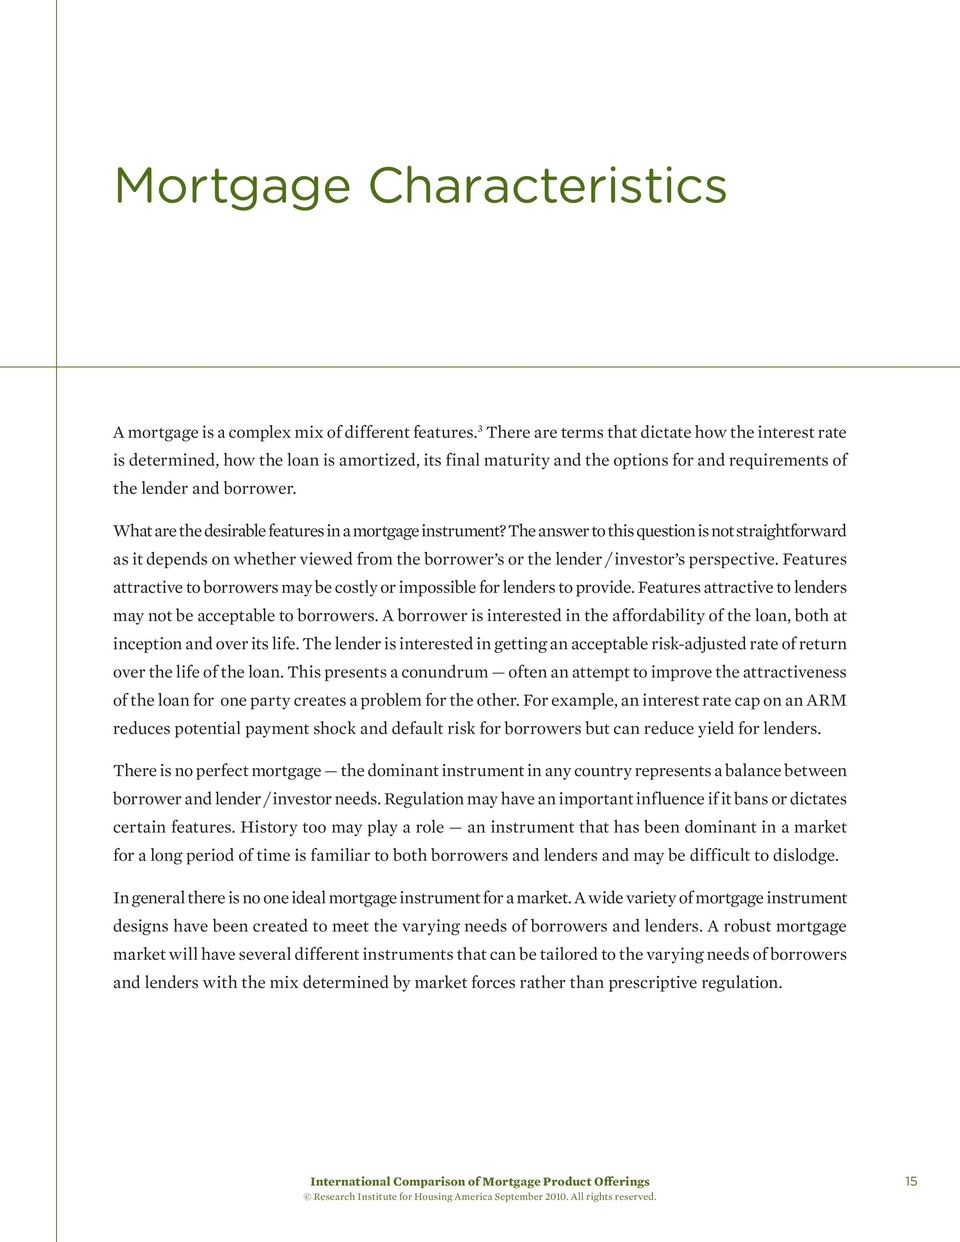 What are the desirable features in a mortgage instrument? The answer to this question is not straightforward as it depends on whether viewed from the borrower s or the lender / investor s perspective.